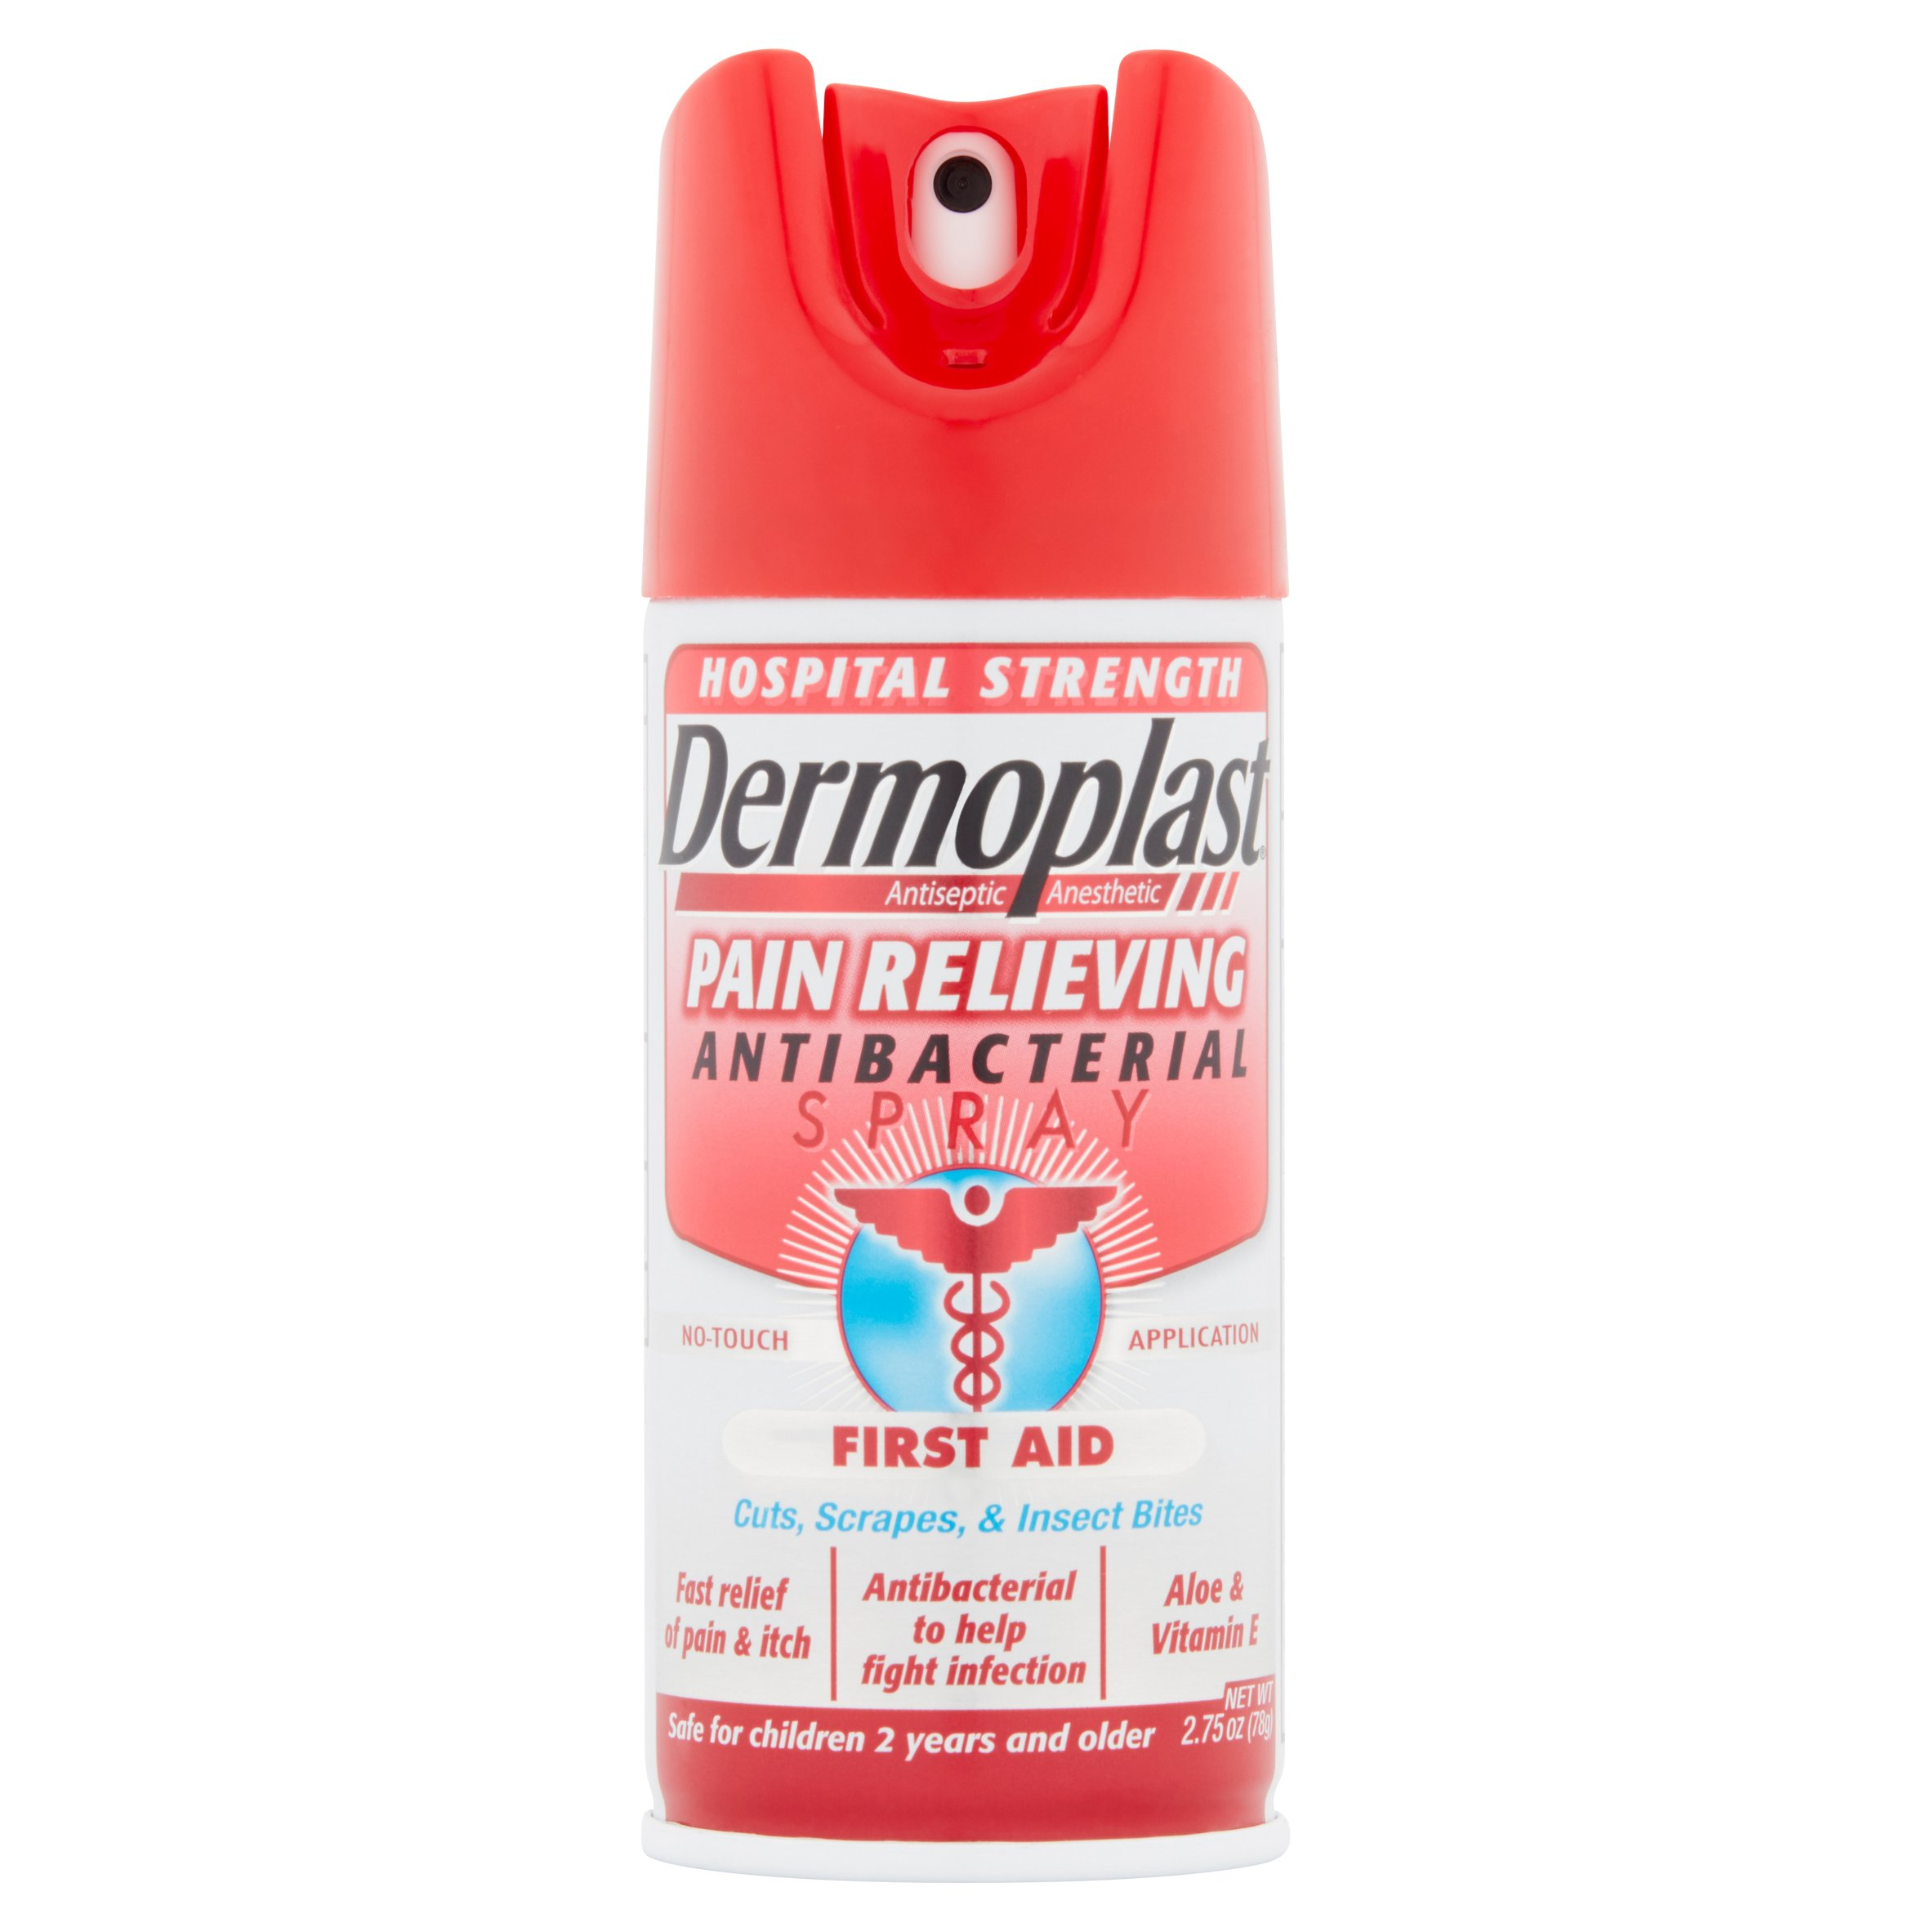 Dermoplast Anesthetic Pain Relieving Antibacterial Spray First Aid by Medtech Products Inc.